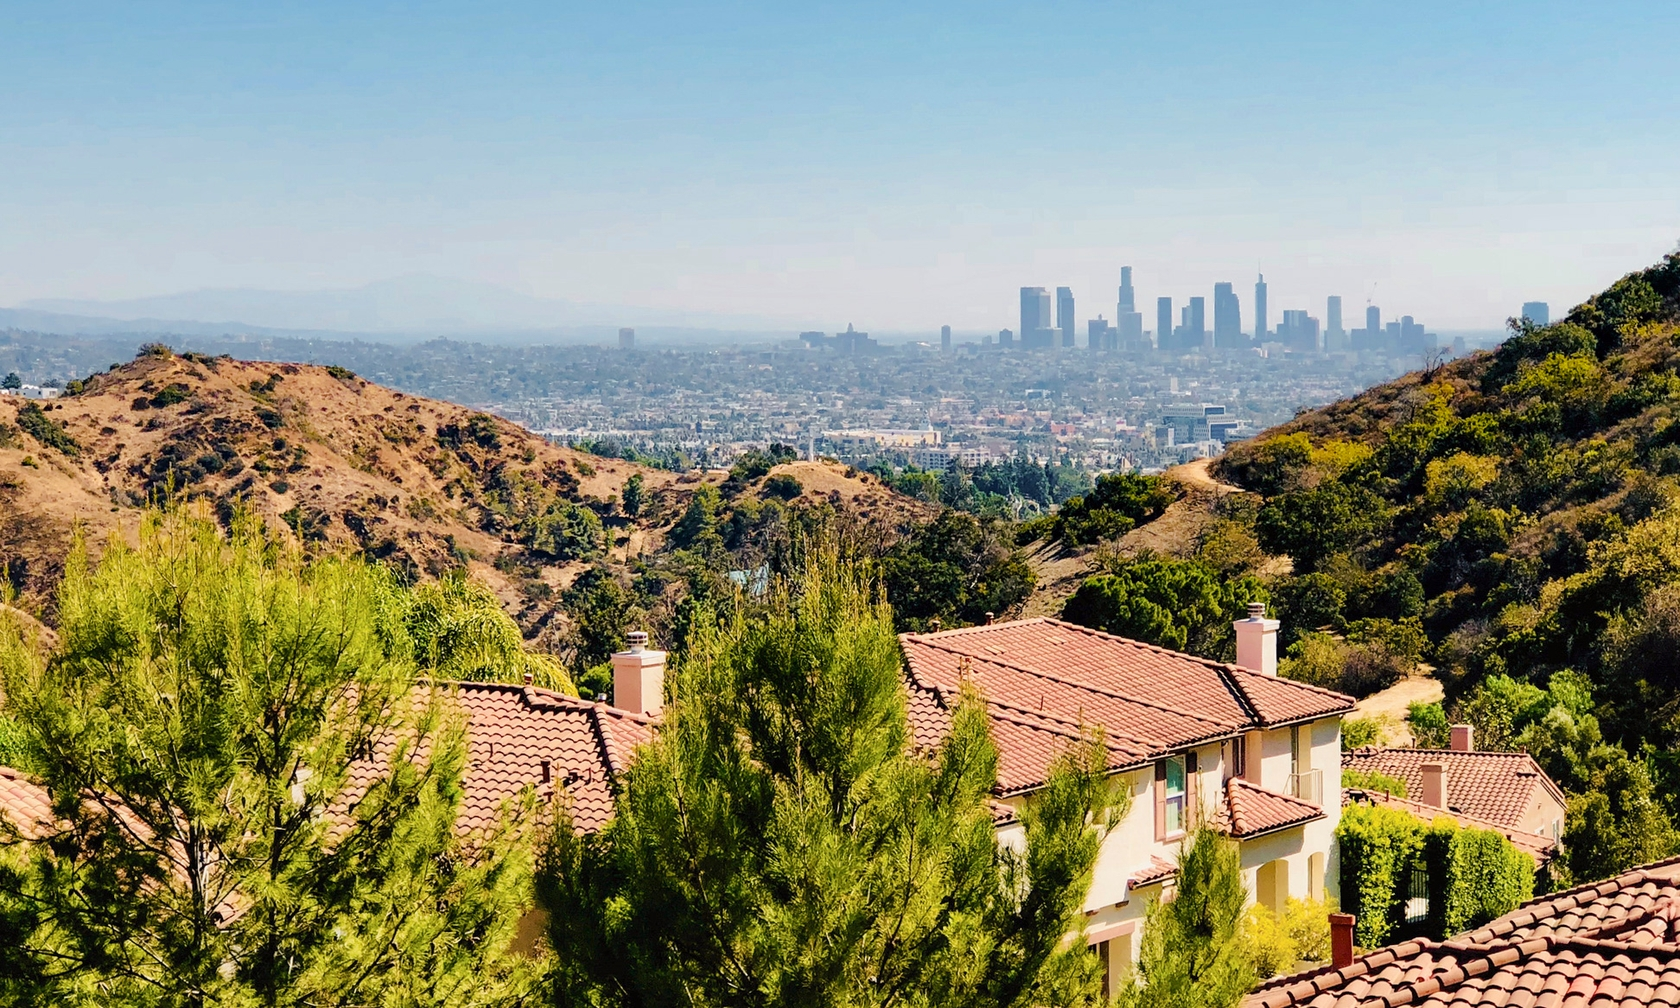 Vacation rentals in Hollywood Hills, Los Angeles